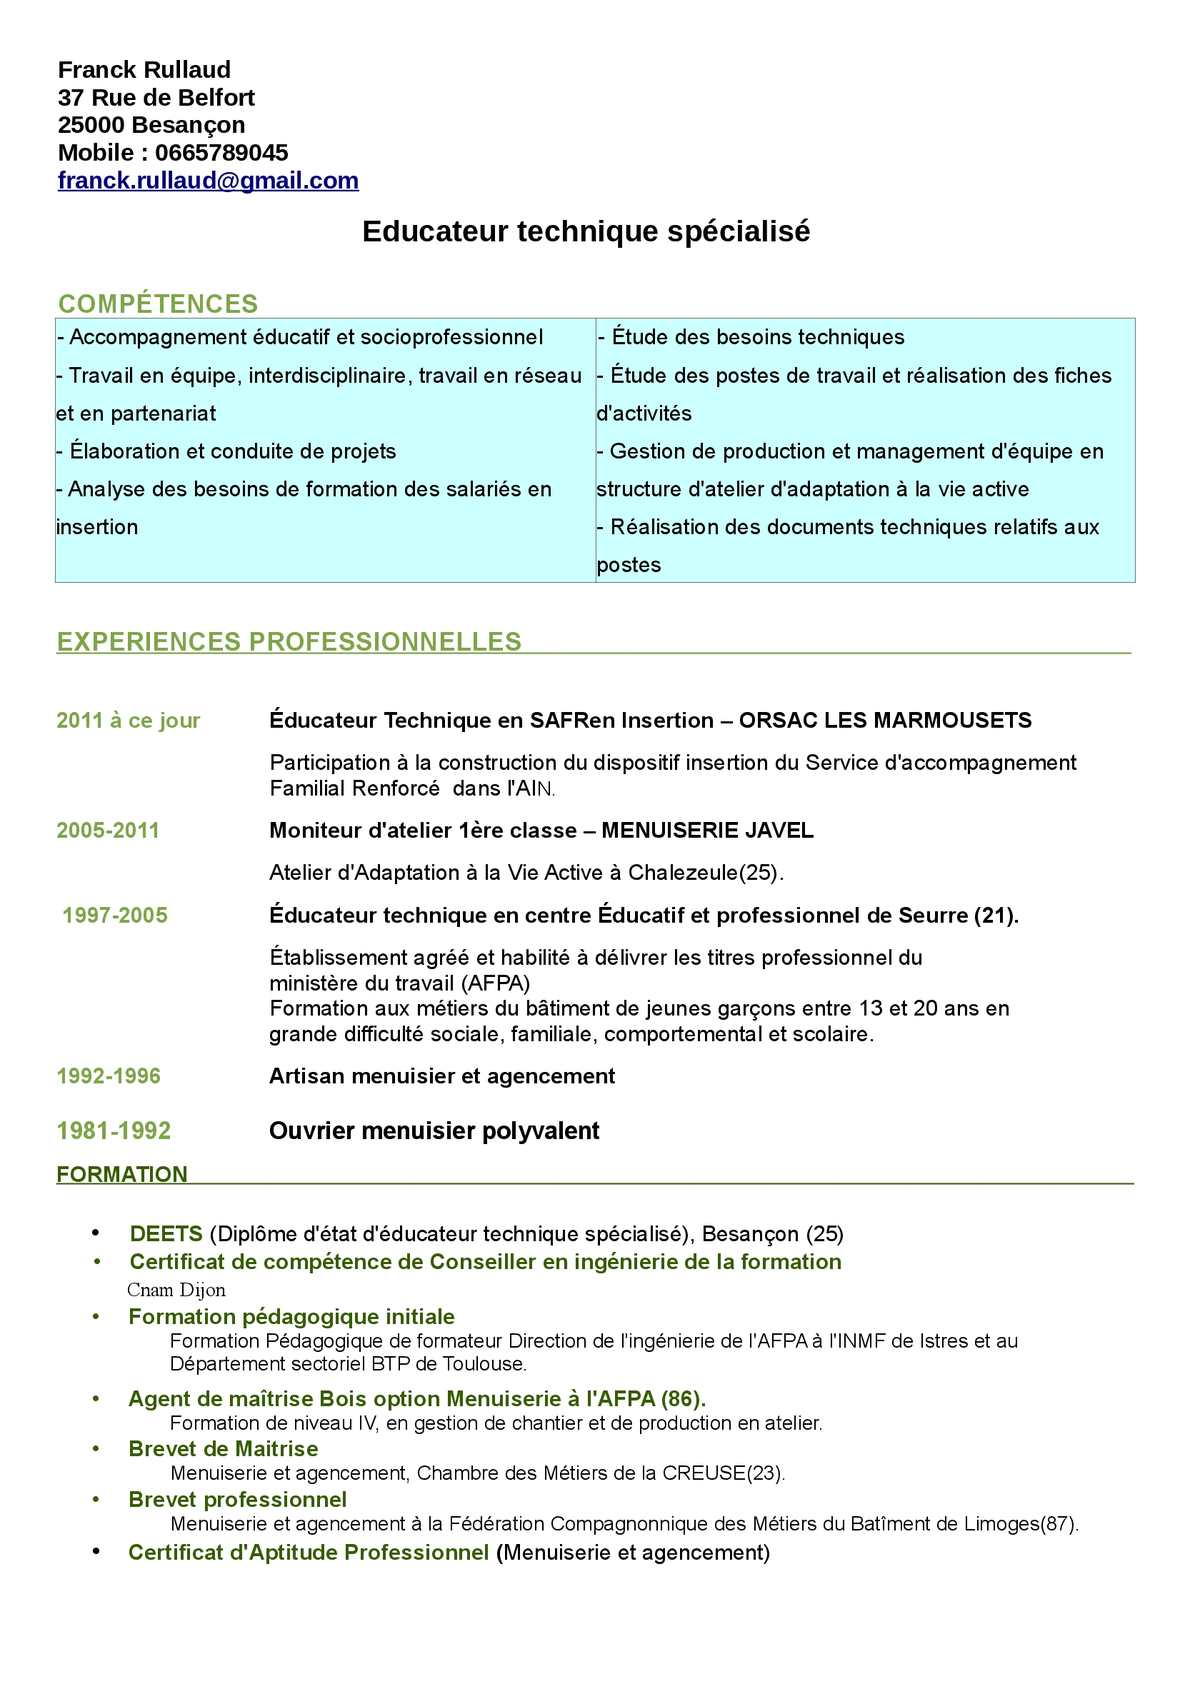 cv formation educateur specialise